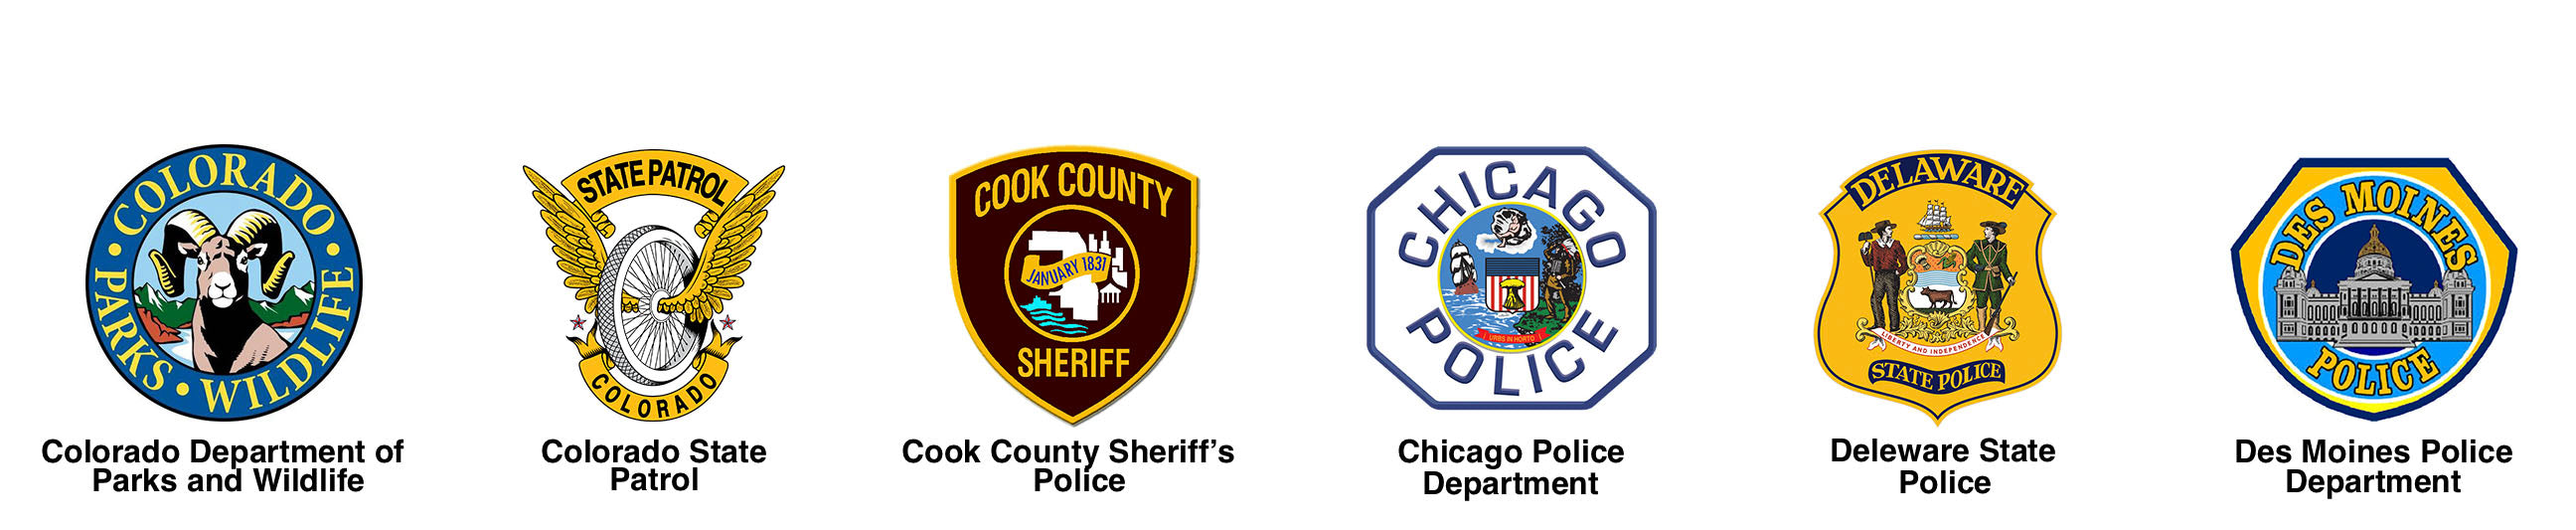 Colorado Department of Parks and Wildlife, Colorado State Patrol, Cook County Sheriffs Office, Chicago PD, Delaware PD, Des Moines PD